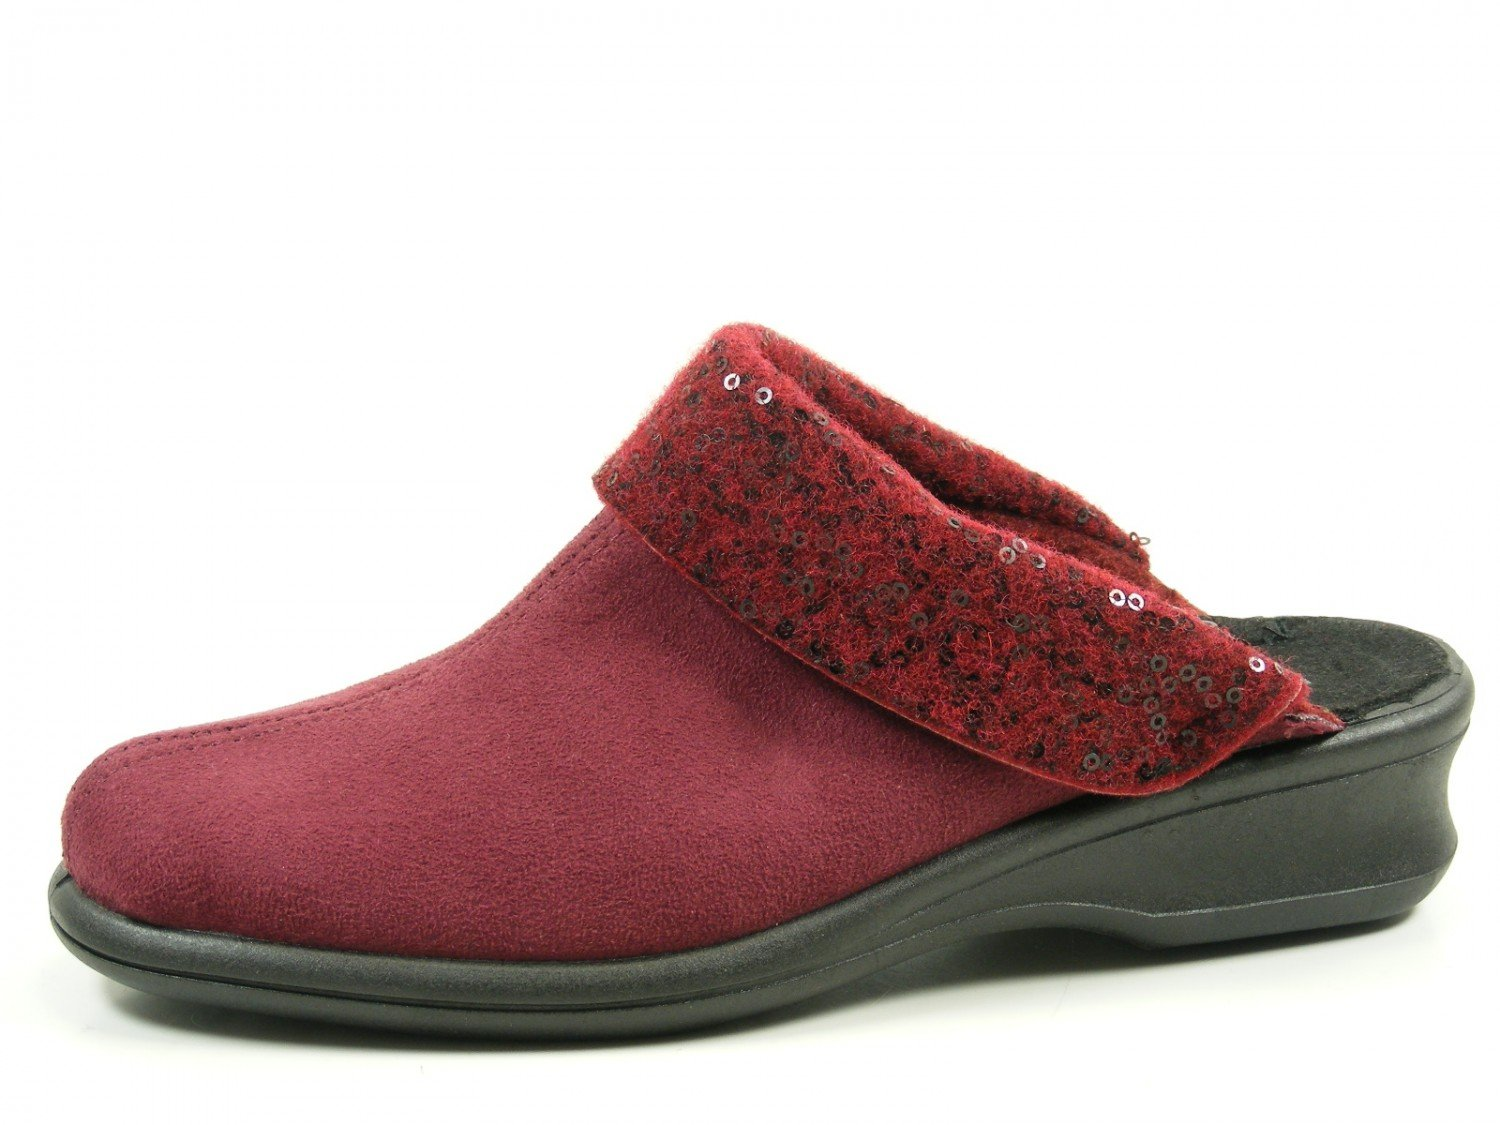 Rohde Rouge 2504 Farun Farun femmes Chaussons Chaussons Rouge 7d795b9 - latesttechnology.space